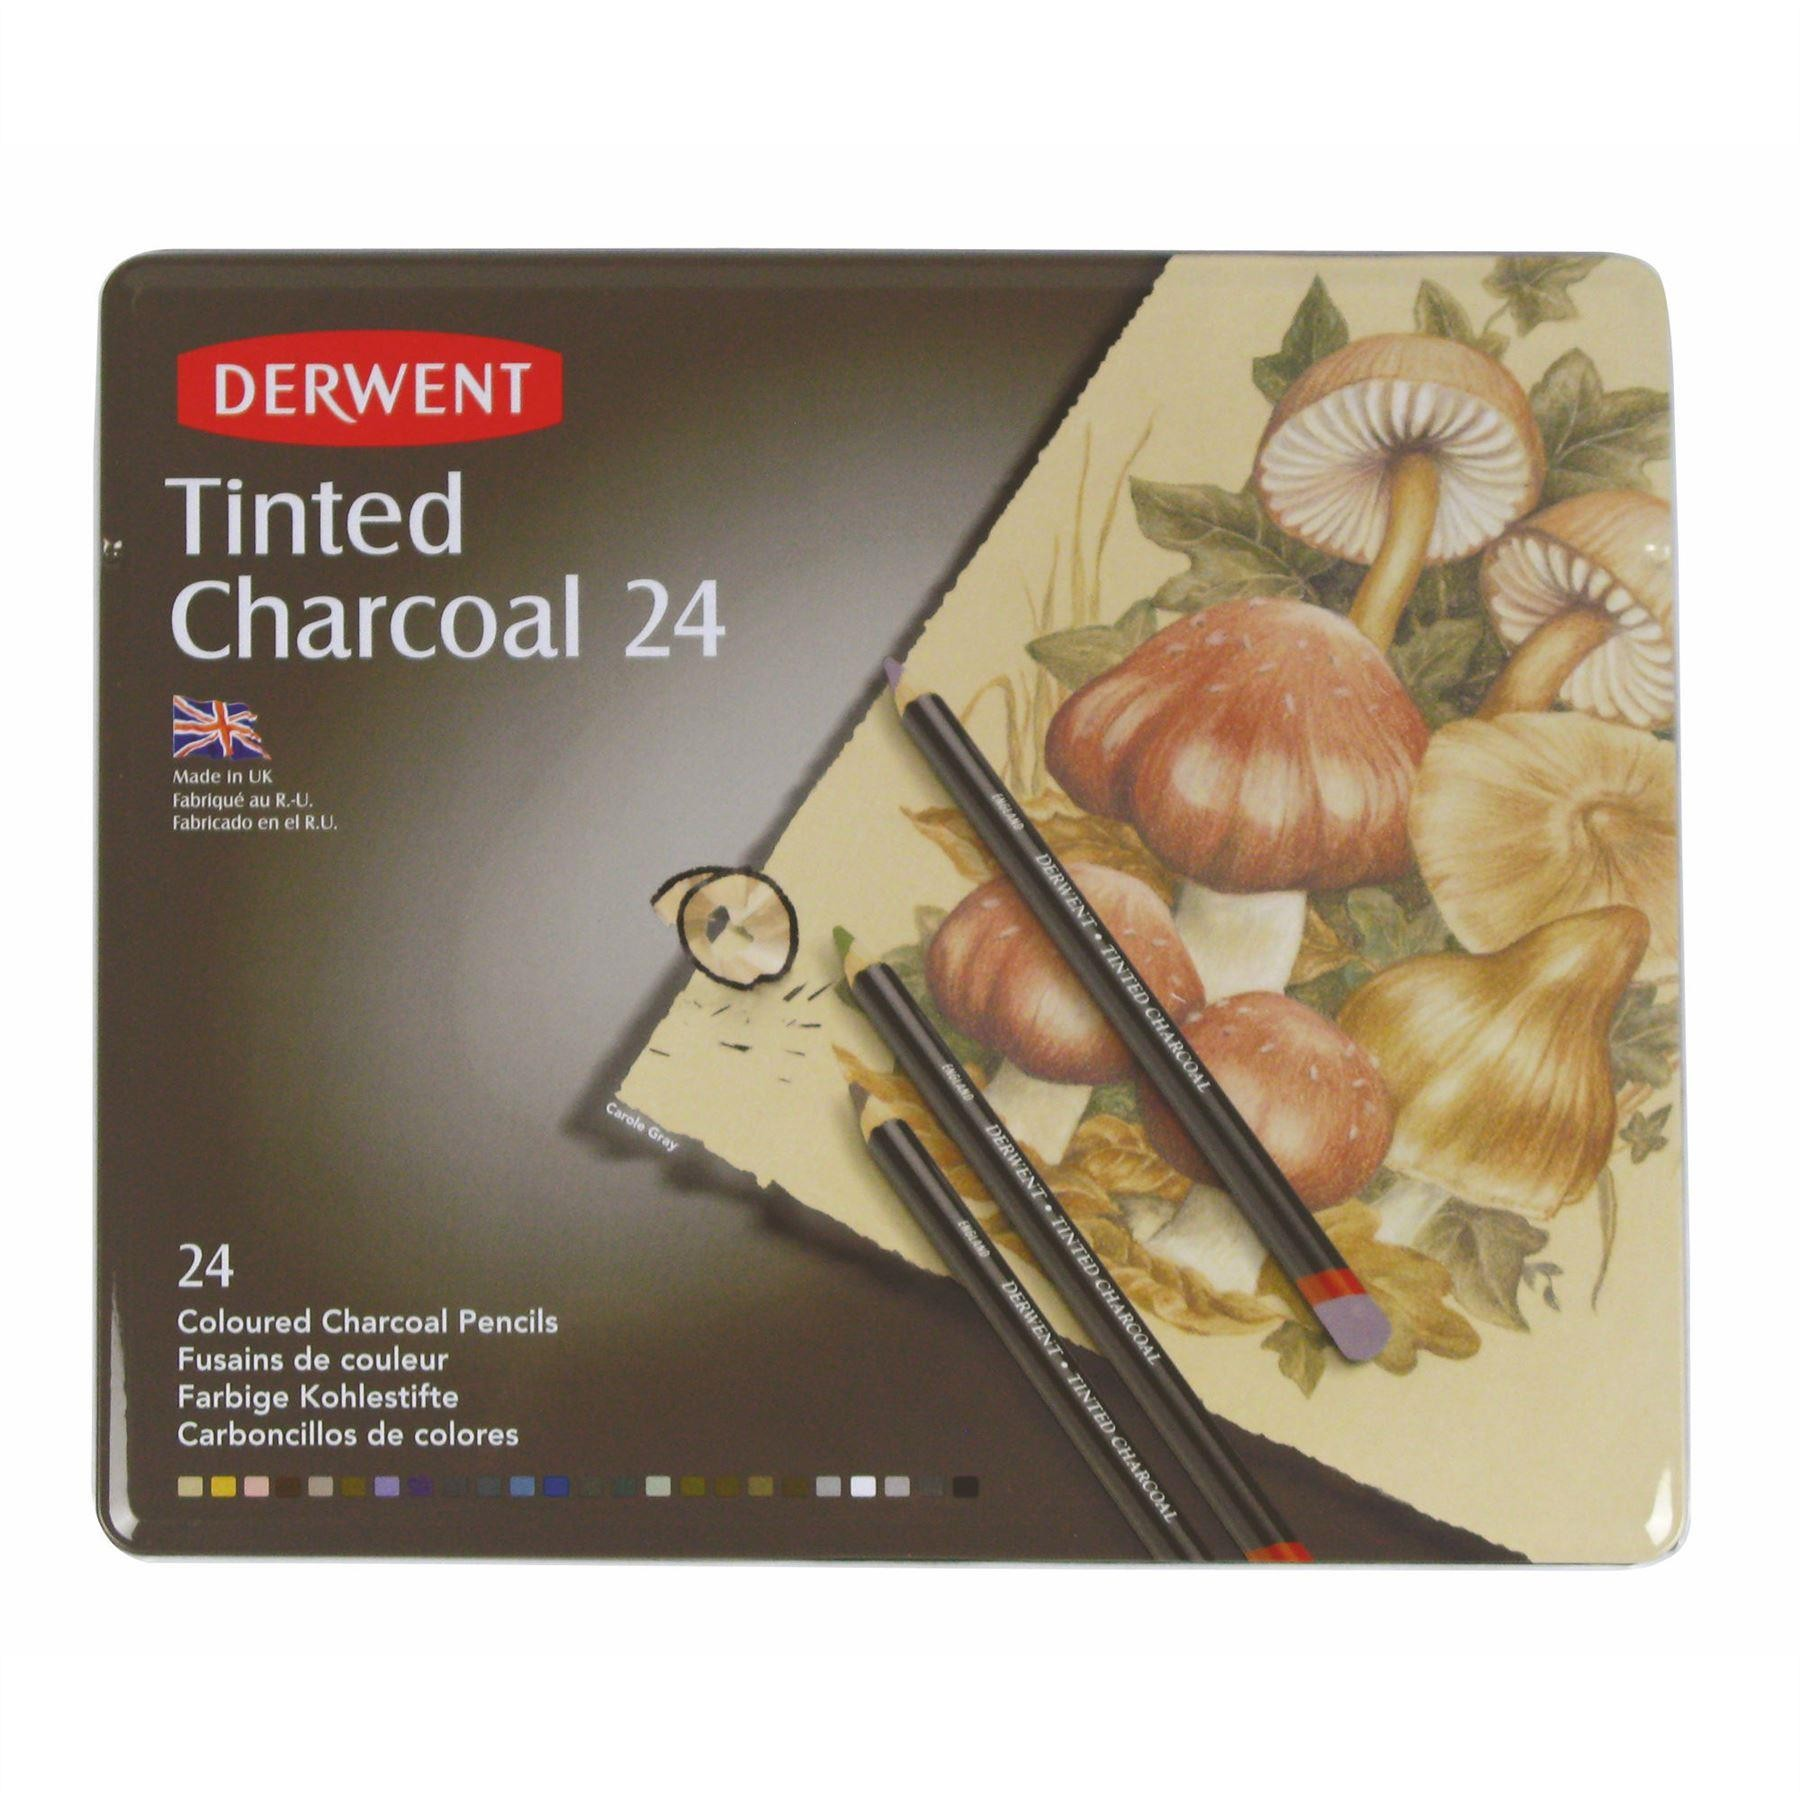 Derwent Artists Tinted Charcoal pencil sets, Coloured.